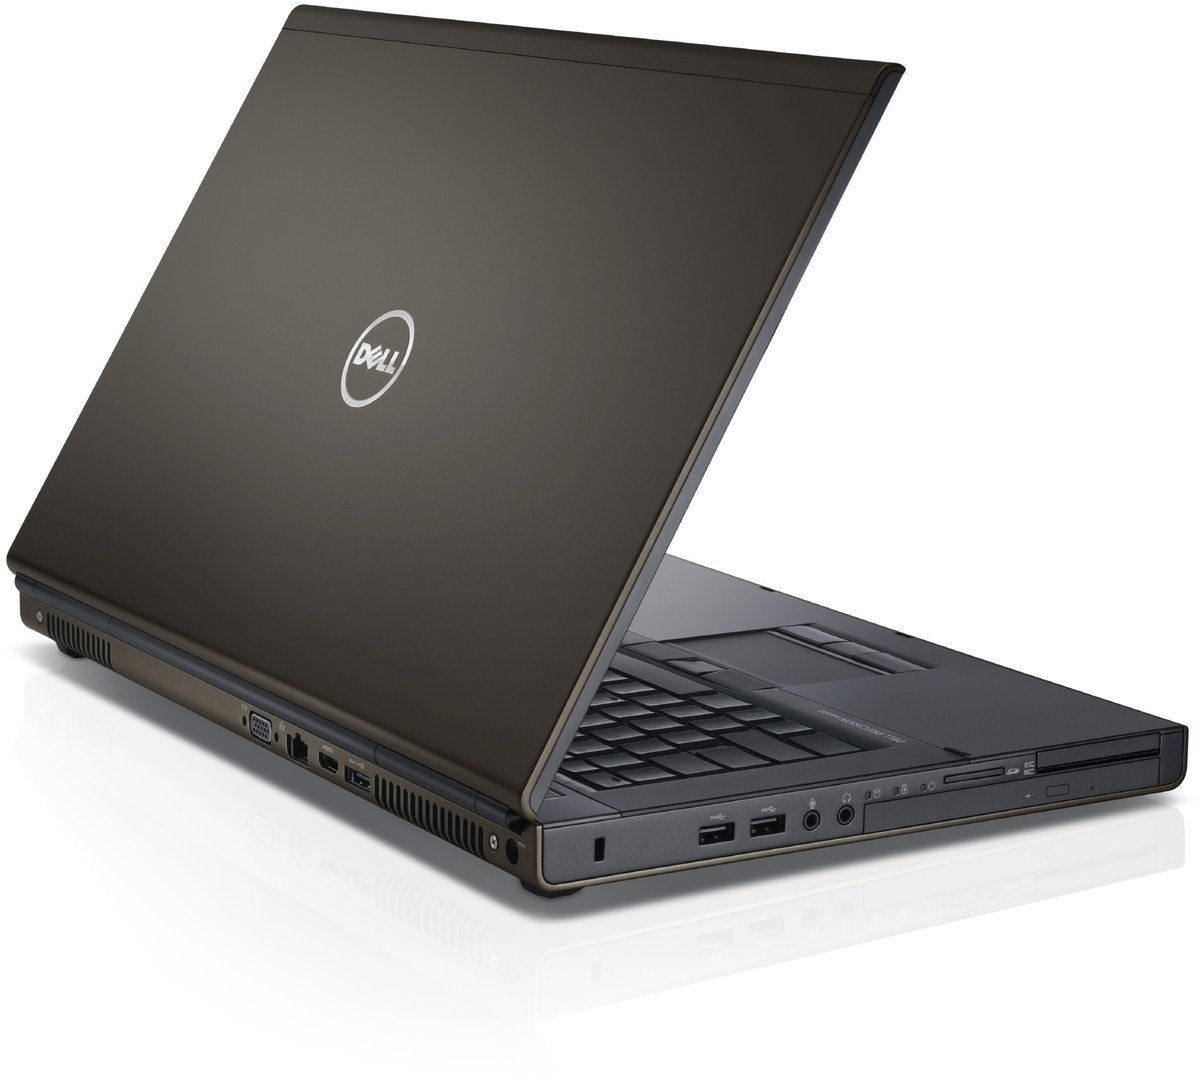 Image result for DELL M6800